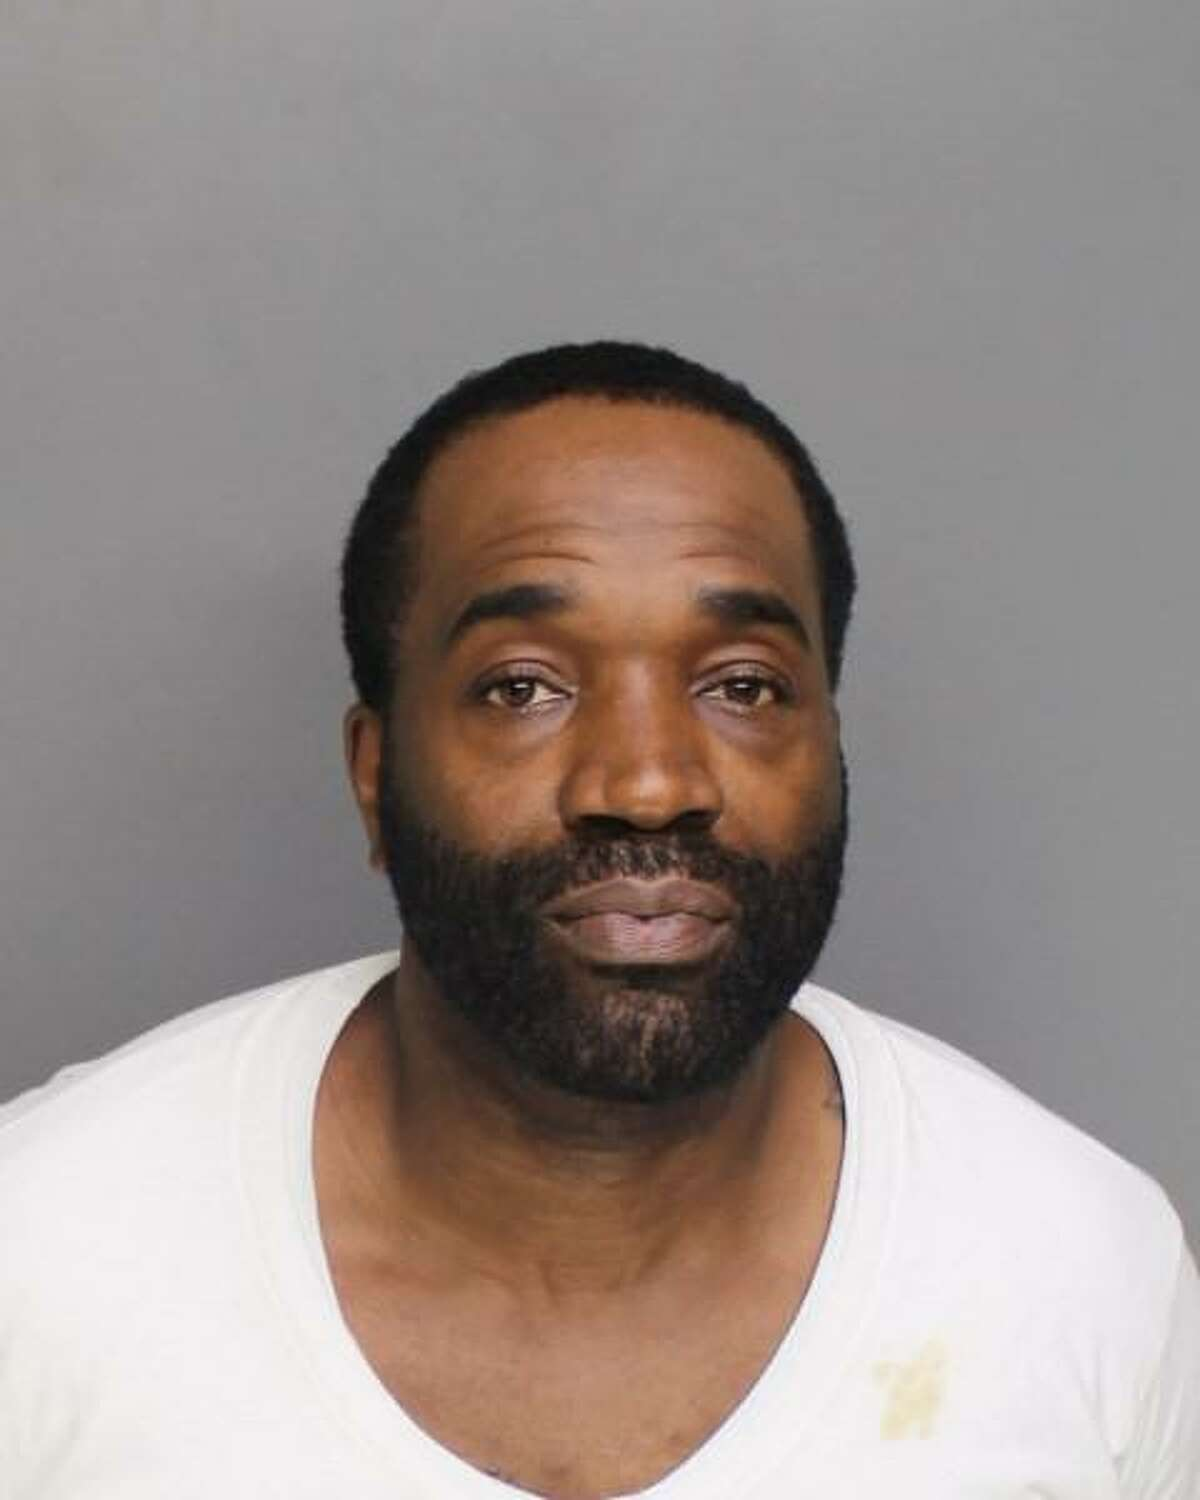 Eric Brown, 46, is charged with felony murder in the 1993 killing of Theodore 'Teddy' Edwards.